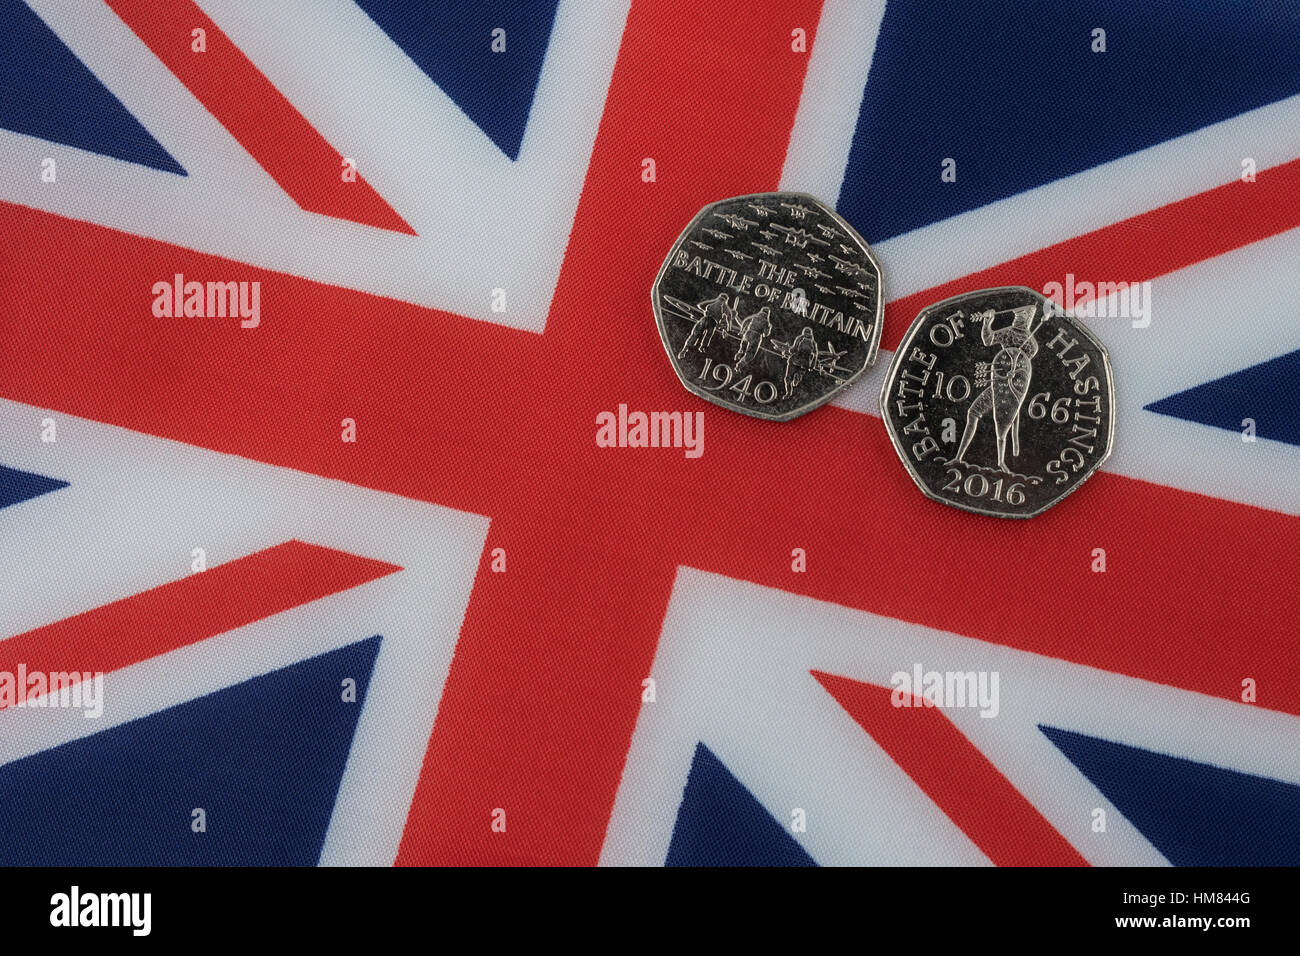 Union Jack with 50p commemorative coins - Battle of Britain and Battle of Hastings Stock Photo